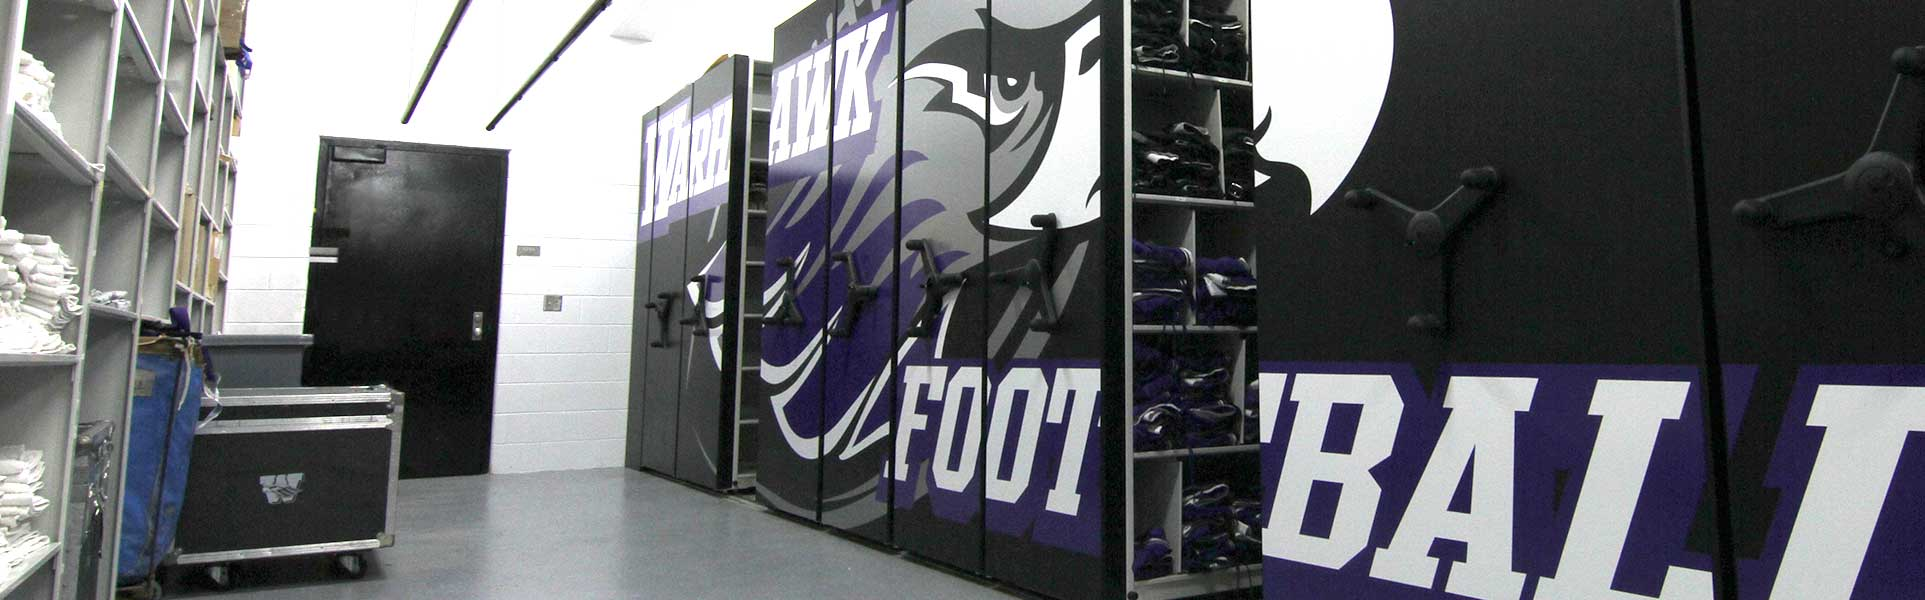 College Sports Team Storage